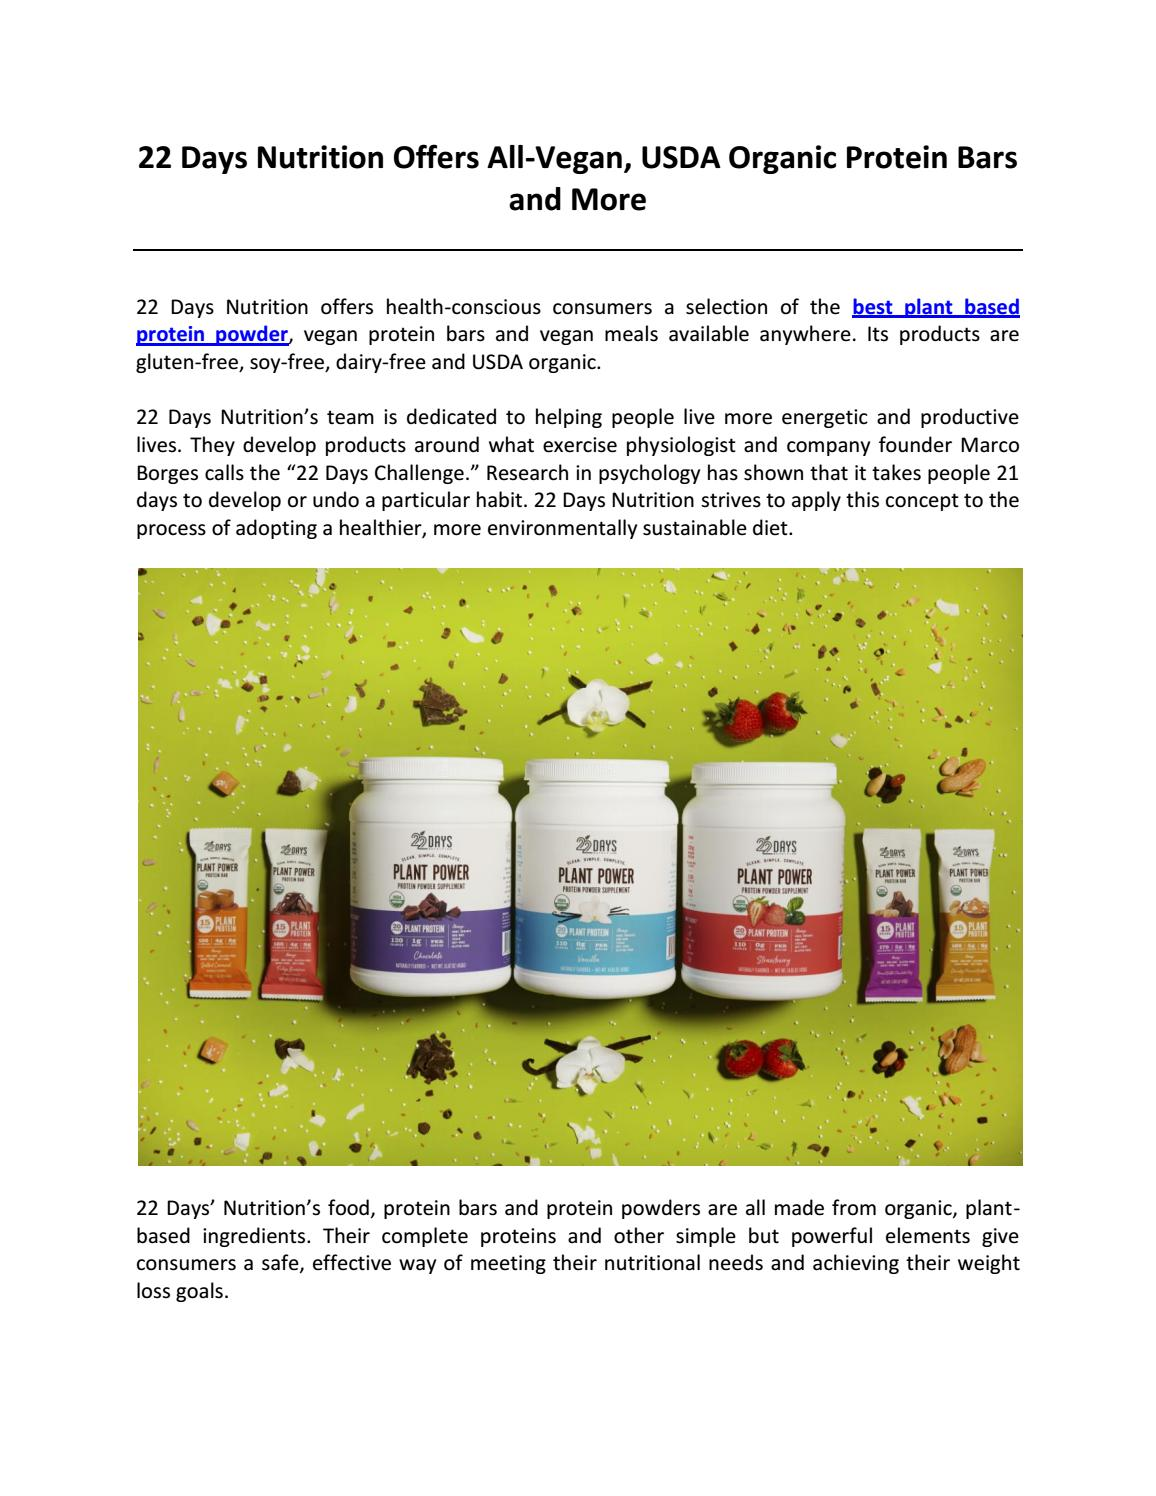 22 Days Nutrition Offers All-Vegan, USDA Organic Protein Bars and More by 22  Days Nutrition - issuu